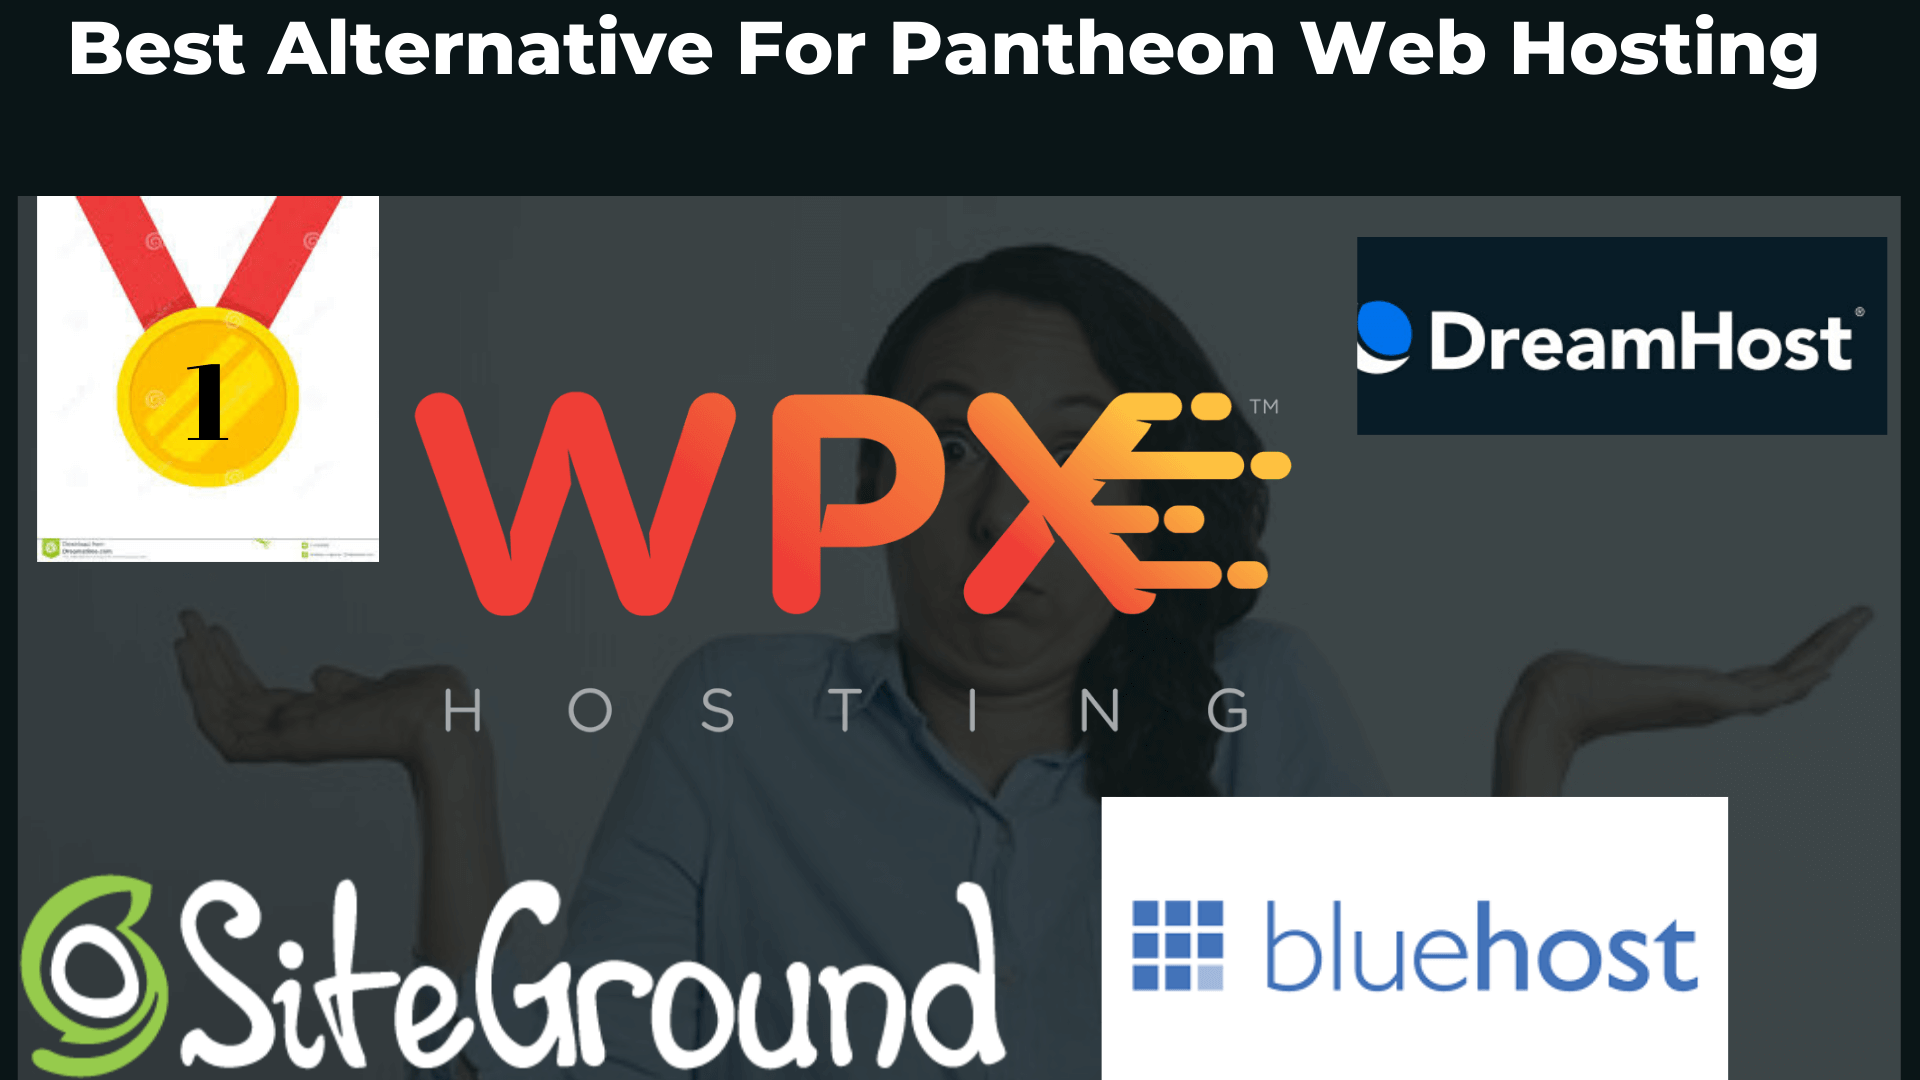 Best Alternative For Pantheon Web Hosting